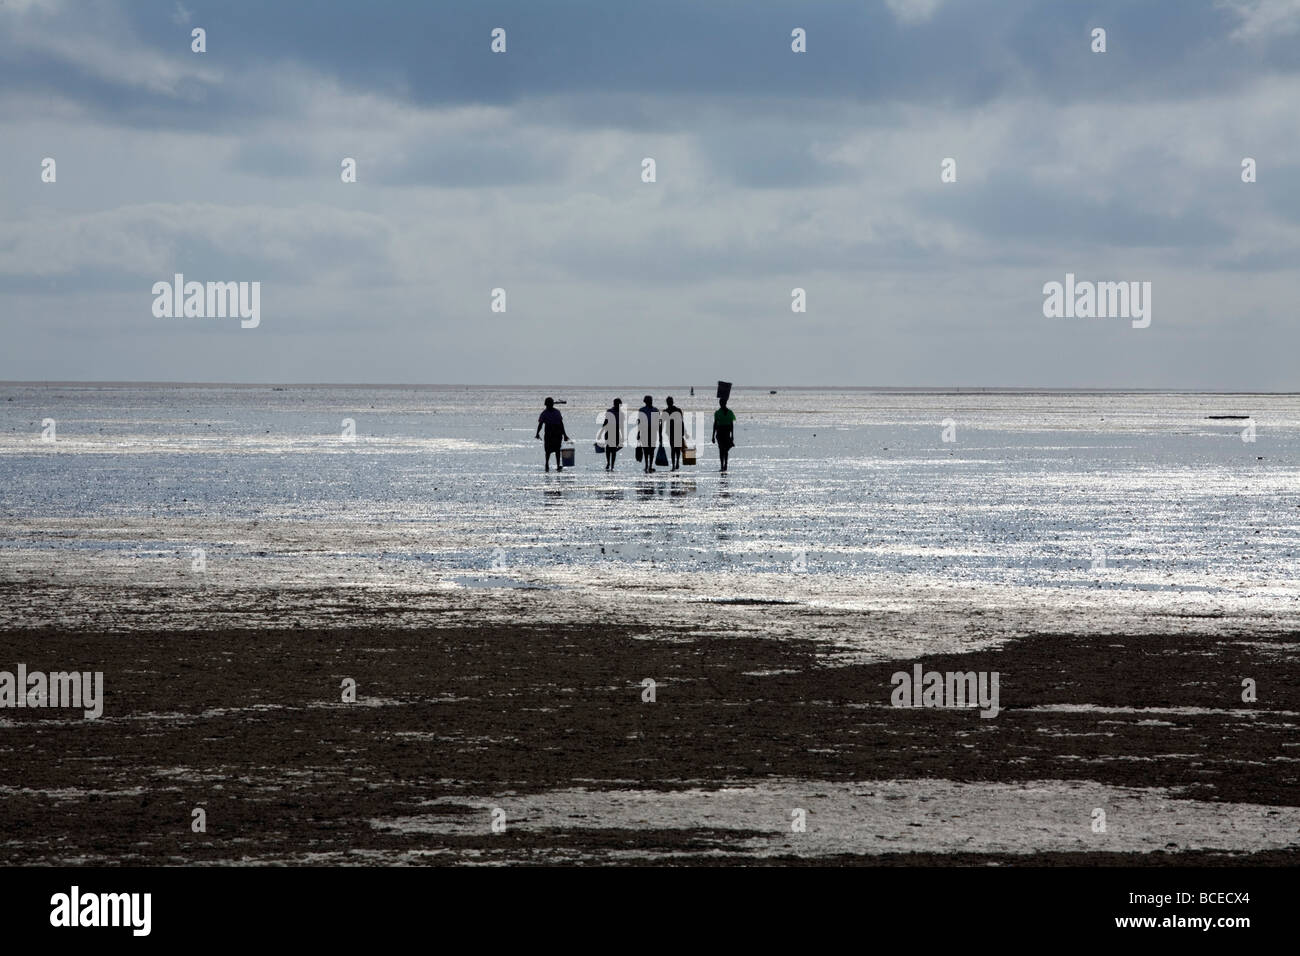 Mozambique, Inhaca Island. Local ladies carry their clam catch in the early morning at low tide on the beach. Stock Photo